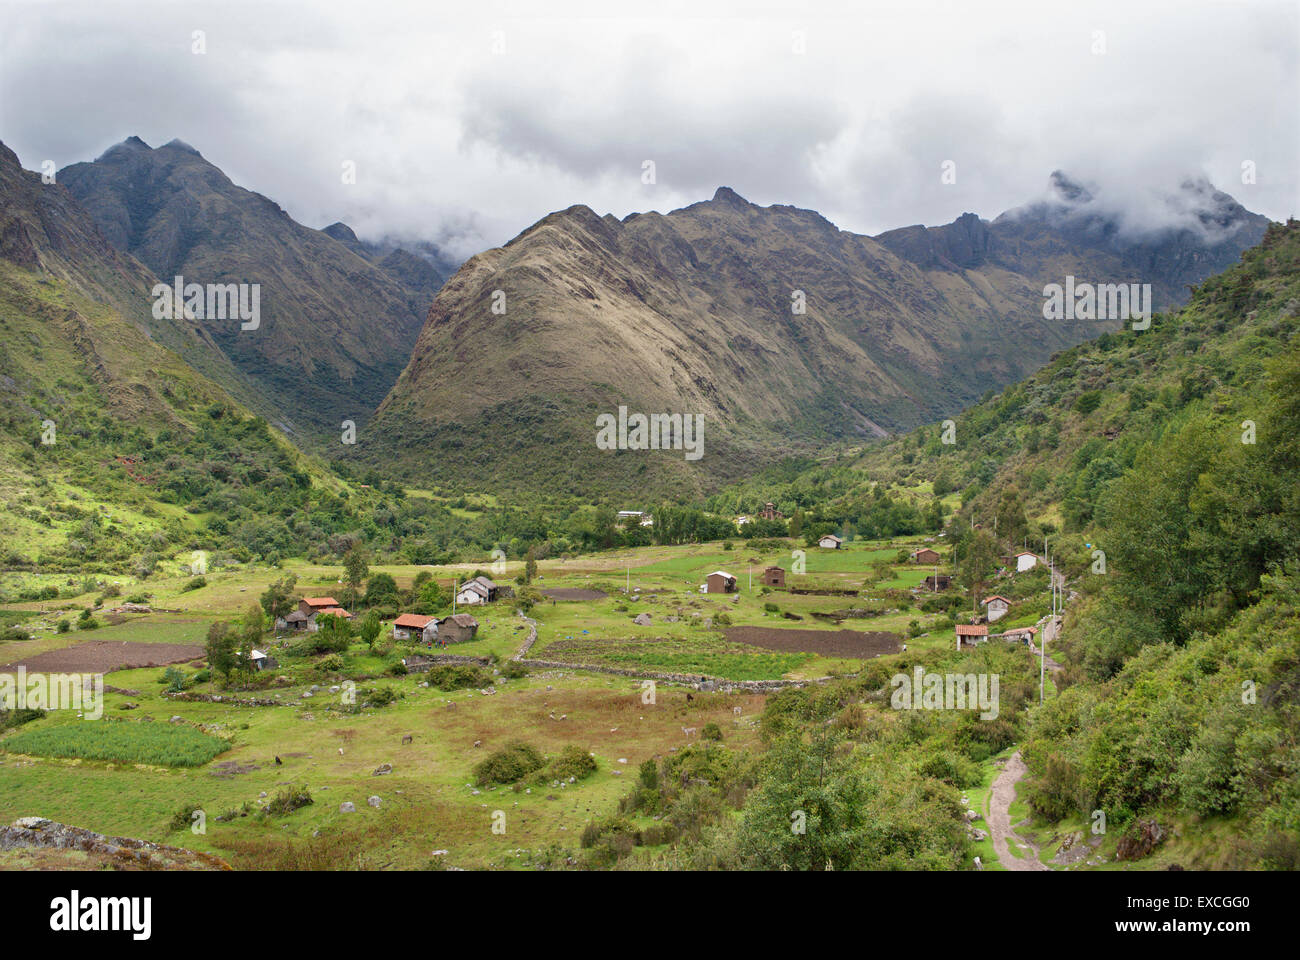 Colca Bamba village and valley - The begin of Santa Cruz in Cordillera Blanca in the Andes - Stock Image